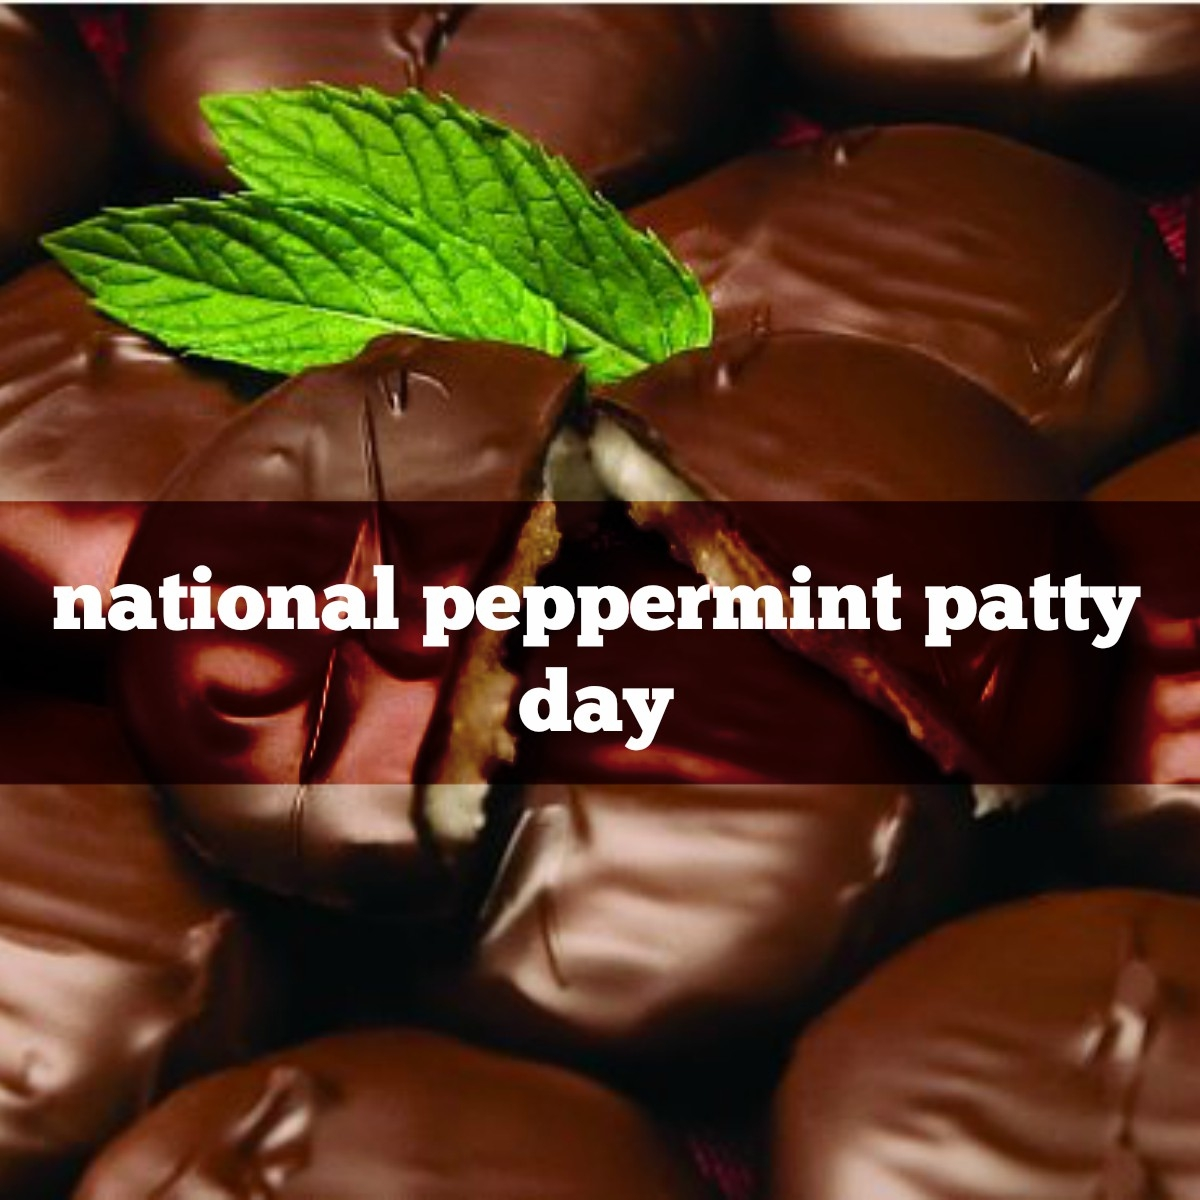 National Peppermint Patty Day 2019